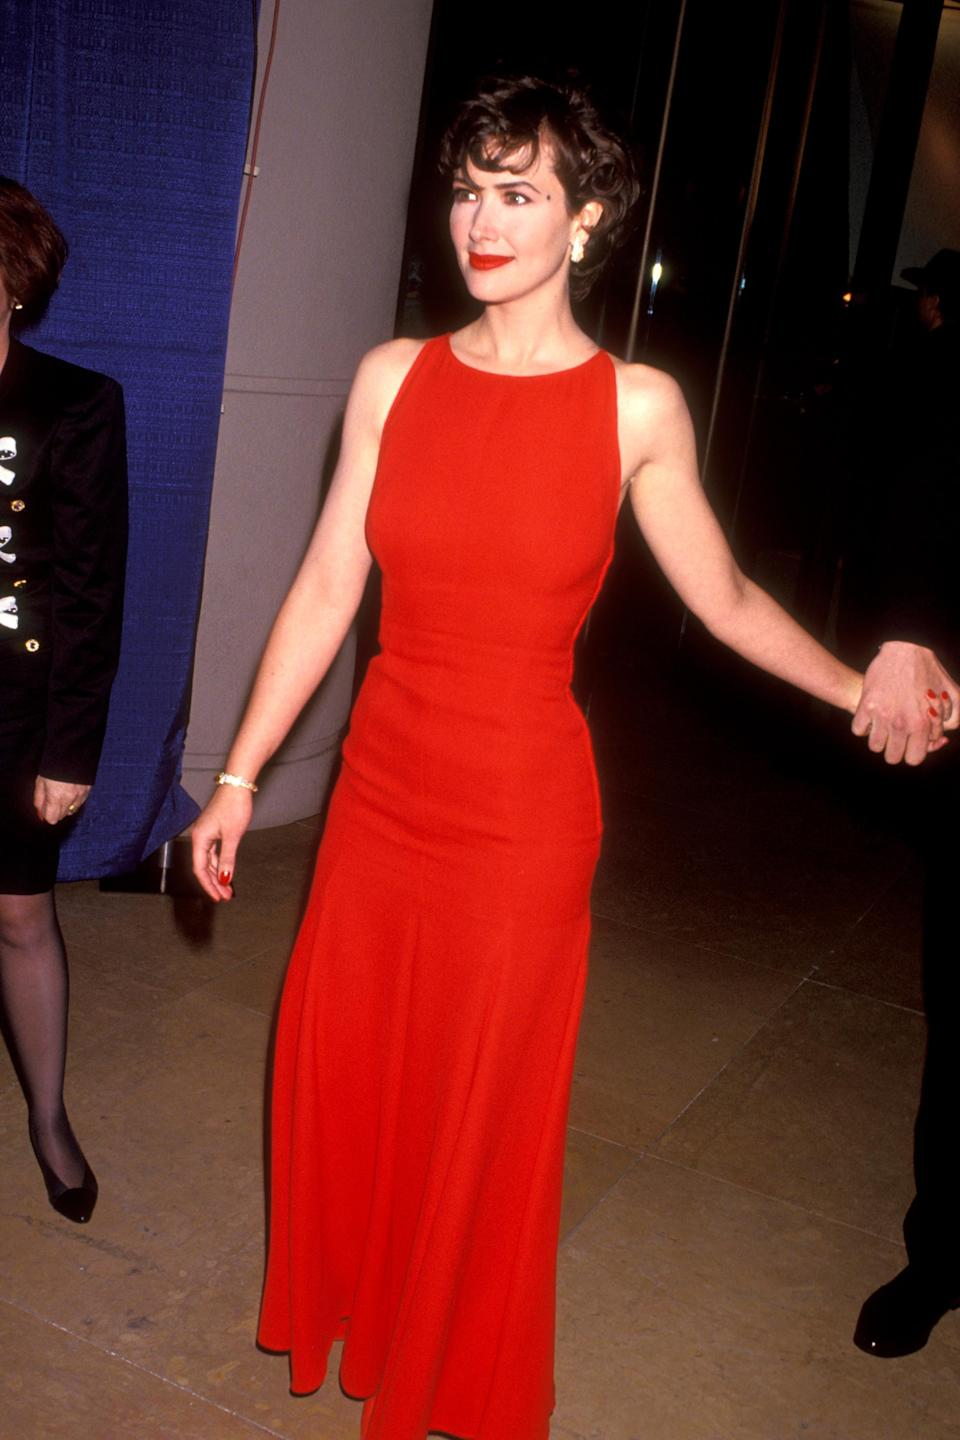 """<strong><h2>1993</h2></strong><br>In a sea of little black dresses and sequin shoulder pads, Janine Turner shines in this red, fitted gown.<br><br><em>Janine Turner in a red dress.</em><span class=""""copyright"""">Photo: Ron Galella, Ltd/WireImage.</span>"""